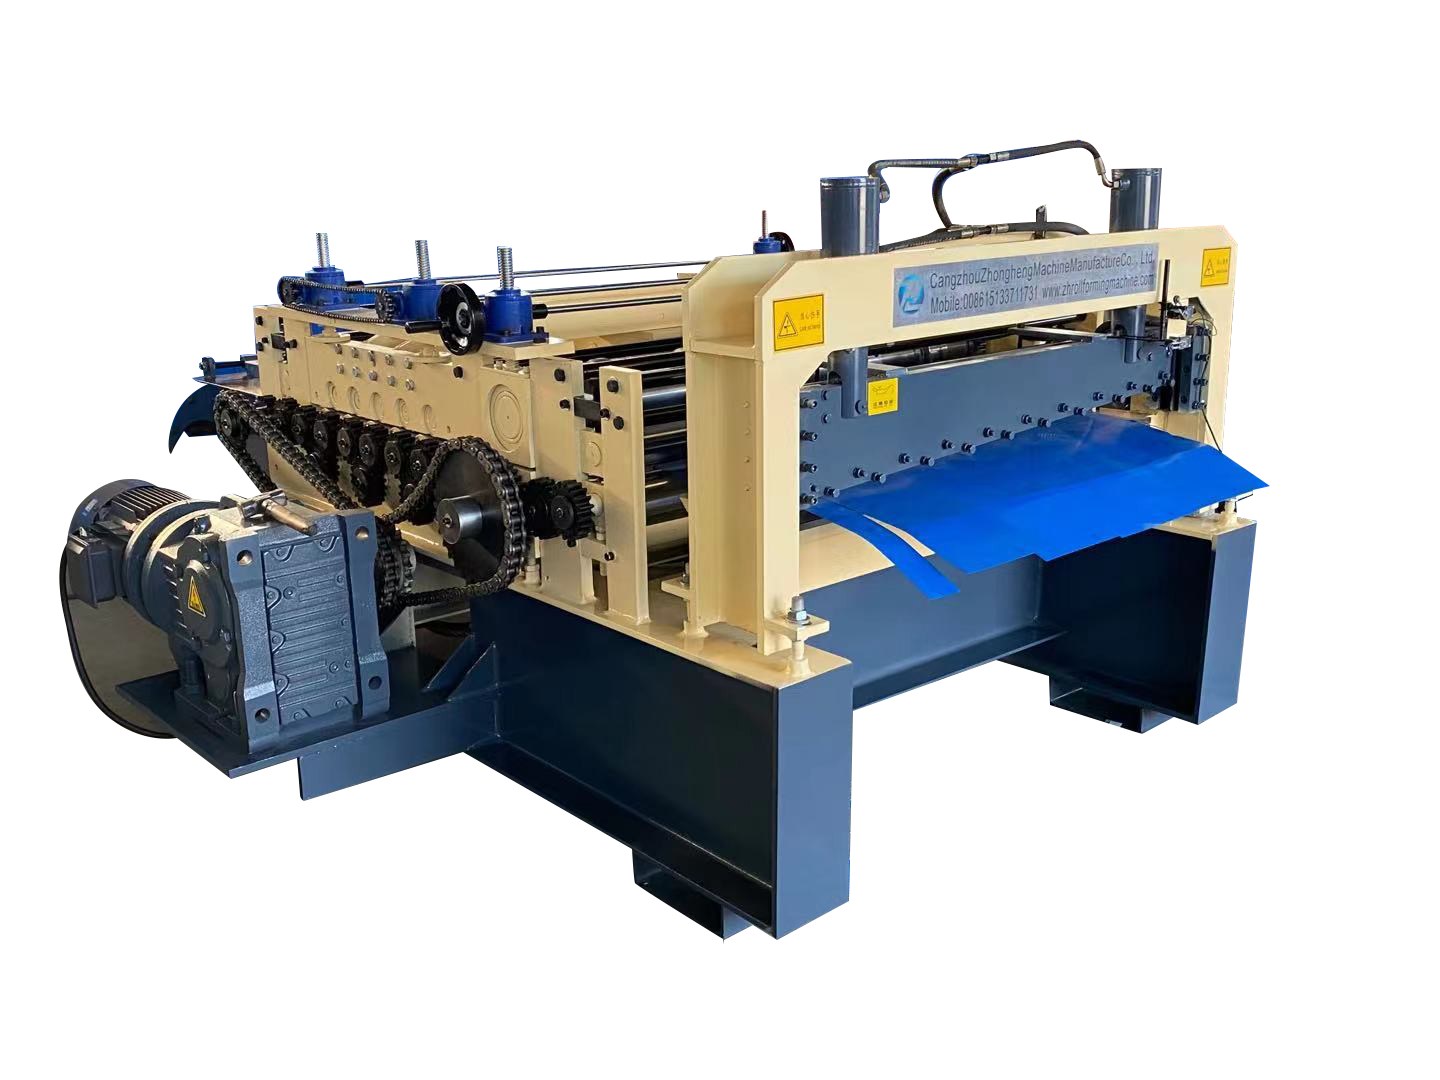 Black Steel 2-3mm Thickness Cut to Length Machine Cutting Machine with Lifting Tools6 Black Steel 2-3mm Thickness Cut to Length Machine Cutting Machine with Lifting Tools